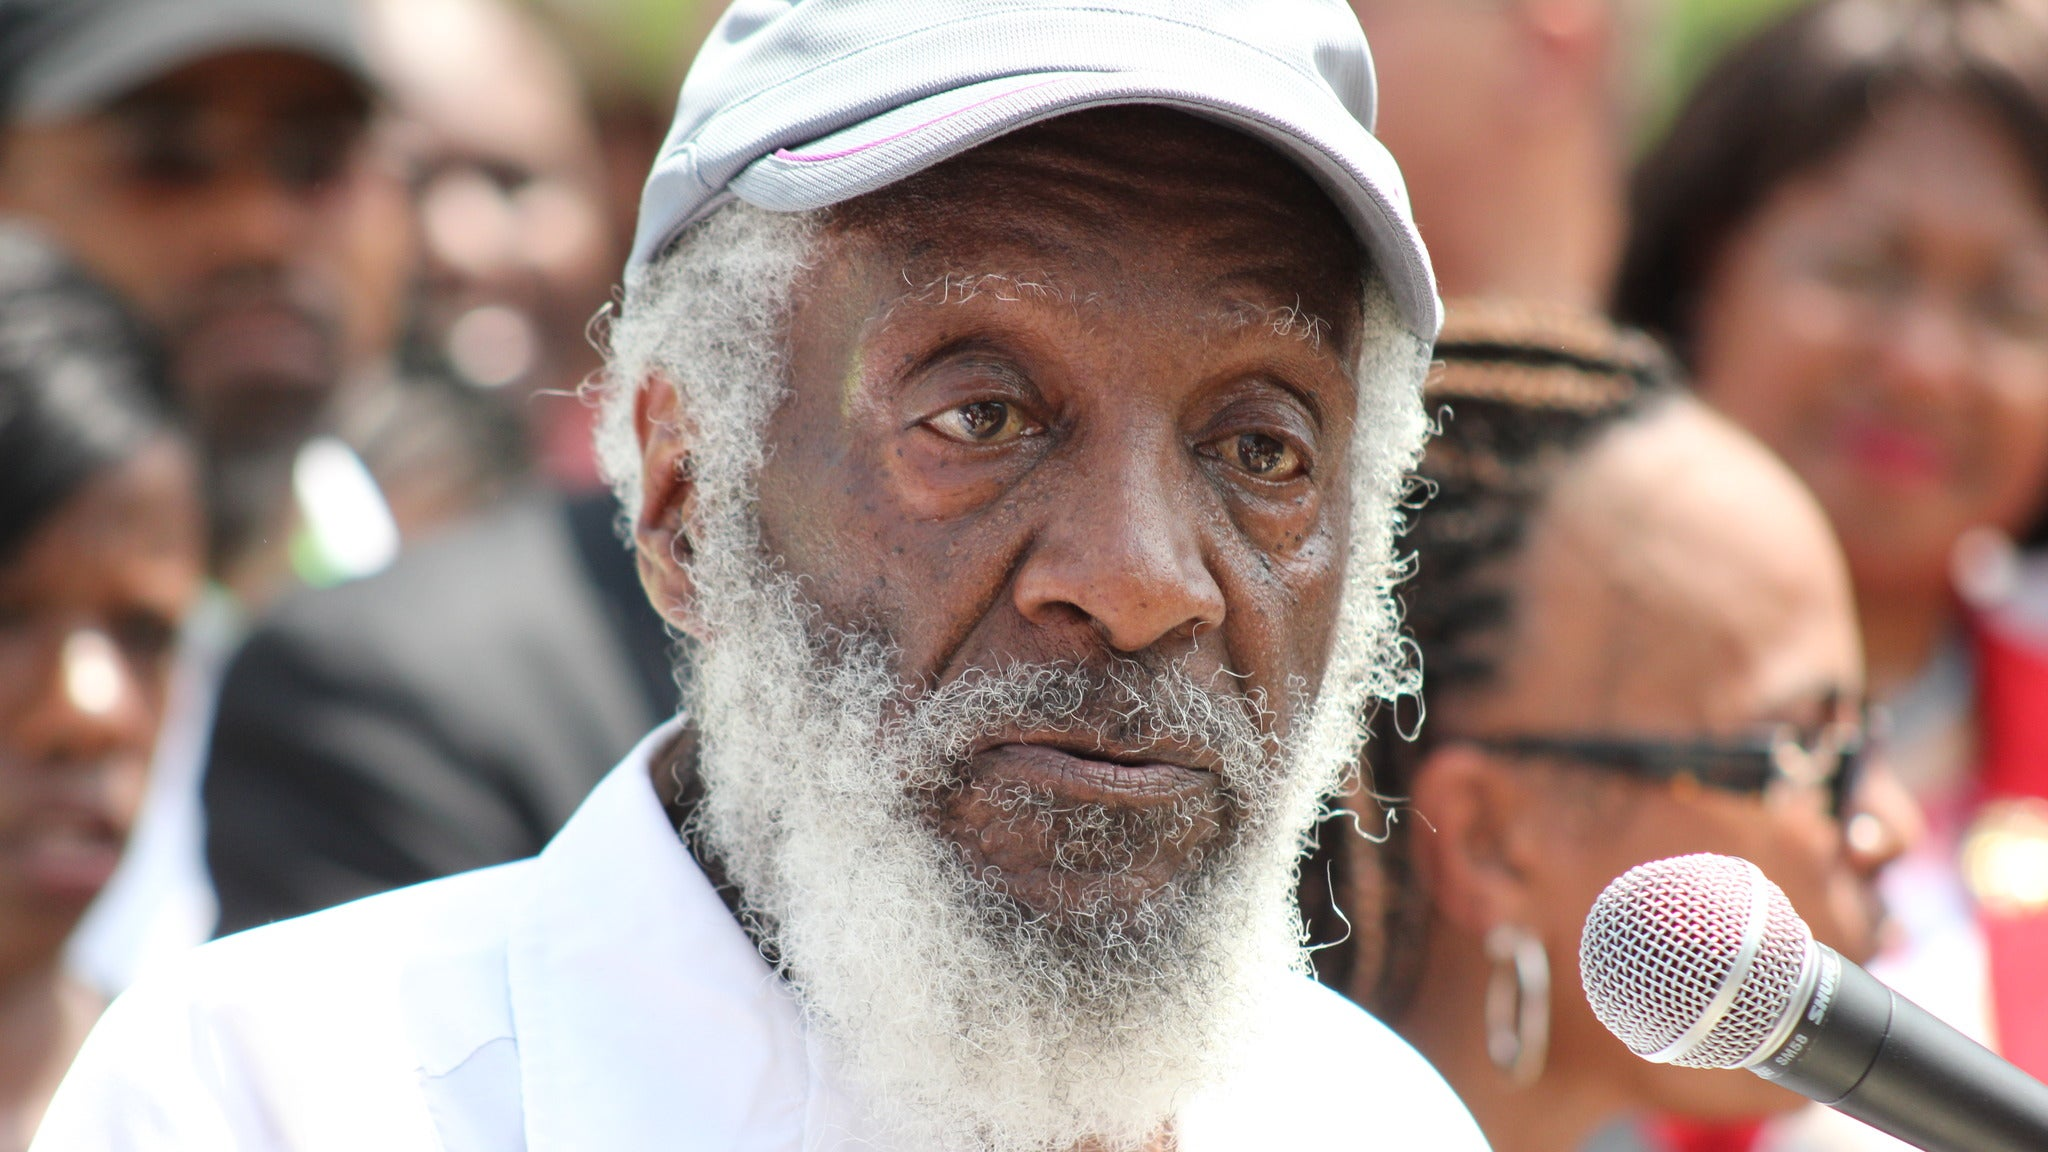 SORRY, THIS EVENT IS NO LONGER ACTIVE<br>Dick Gregory at Hollywood Improv (The Main Room) - Hollywood, CA 90046